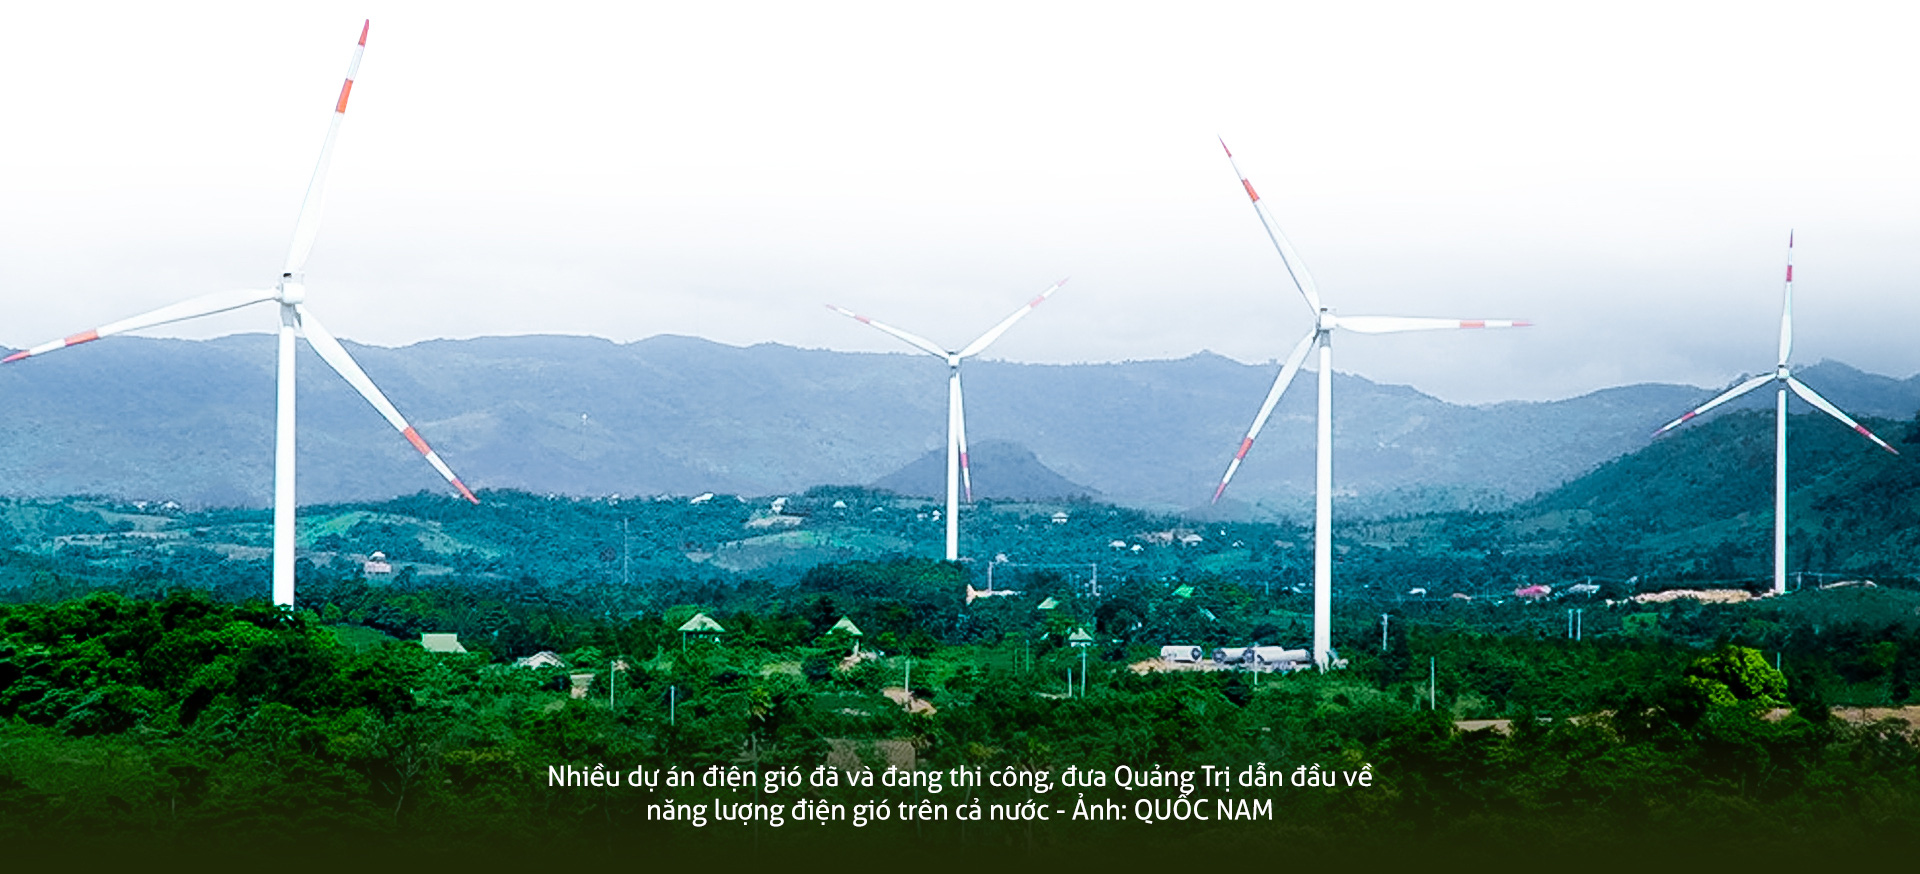 A wind farm in Huong Hoa District, Quang Tri Province from afar. Photo: Quoc Nam / Tuoi Tre